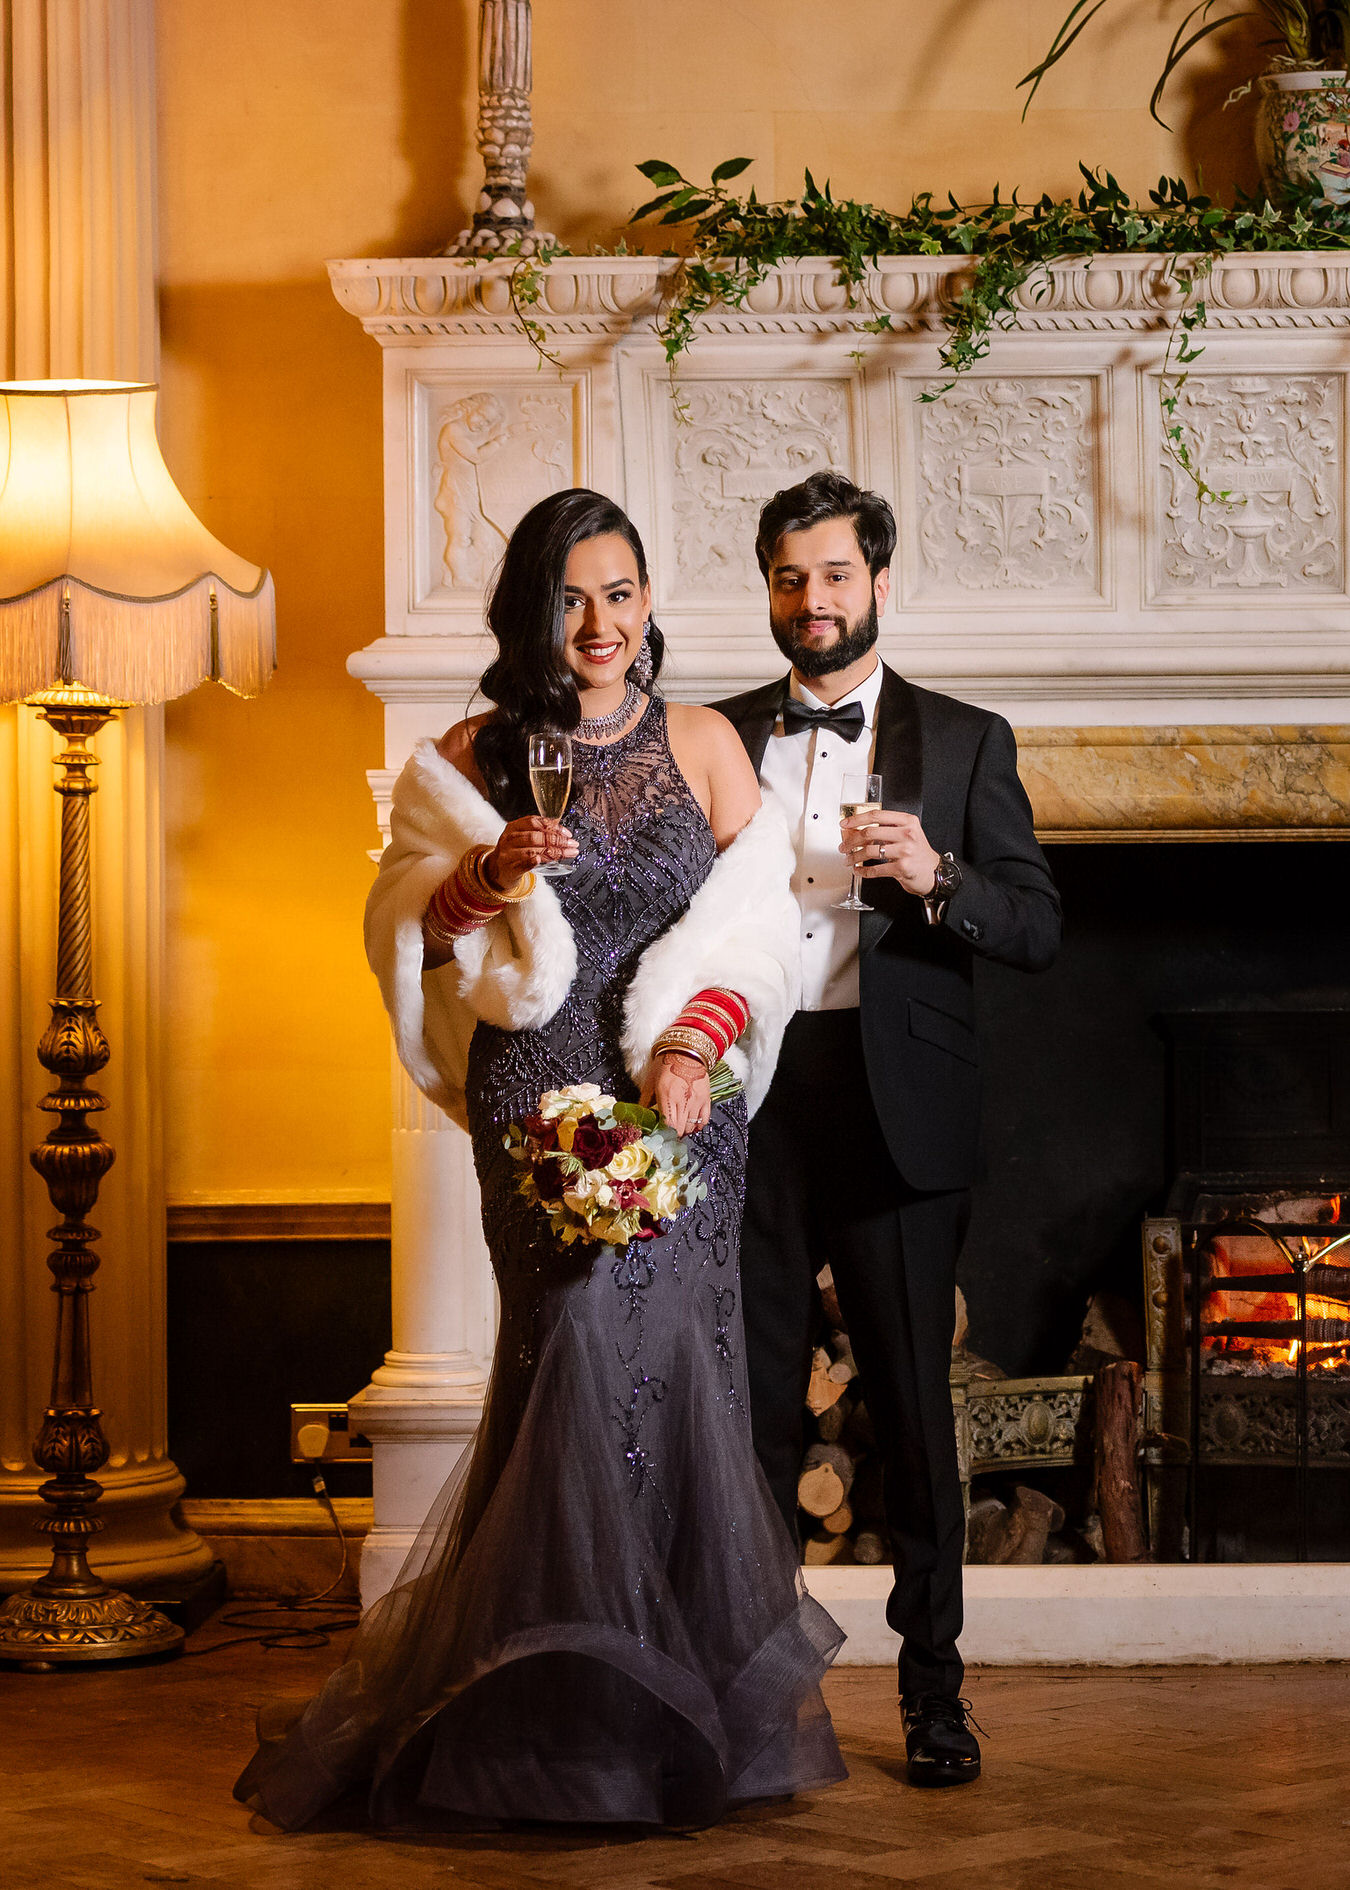 Asian wedding bride and groom with champagne glasses standing in front of the fireplace